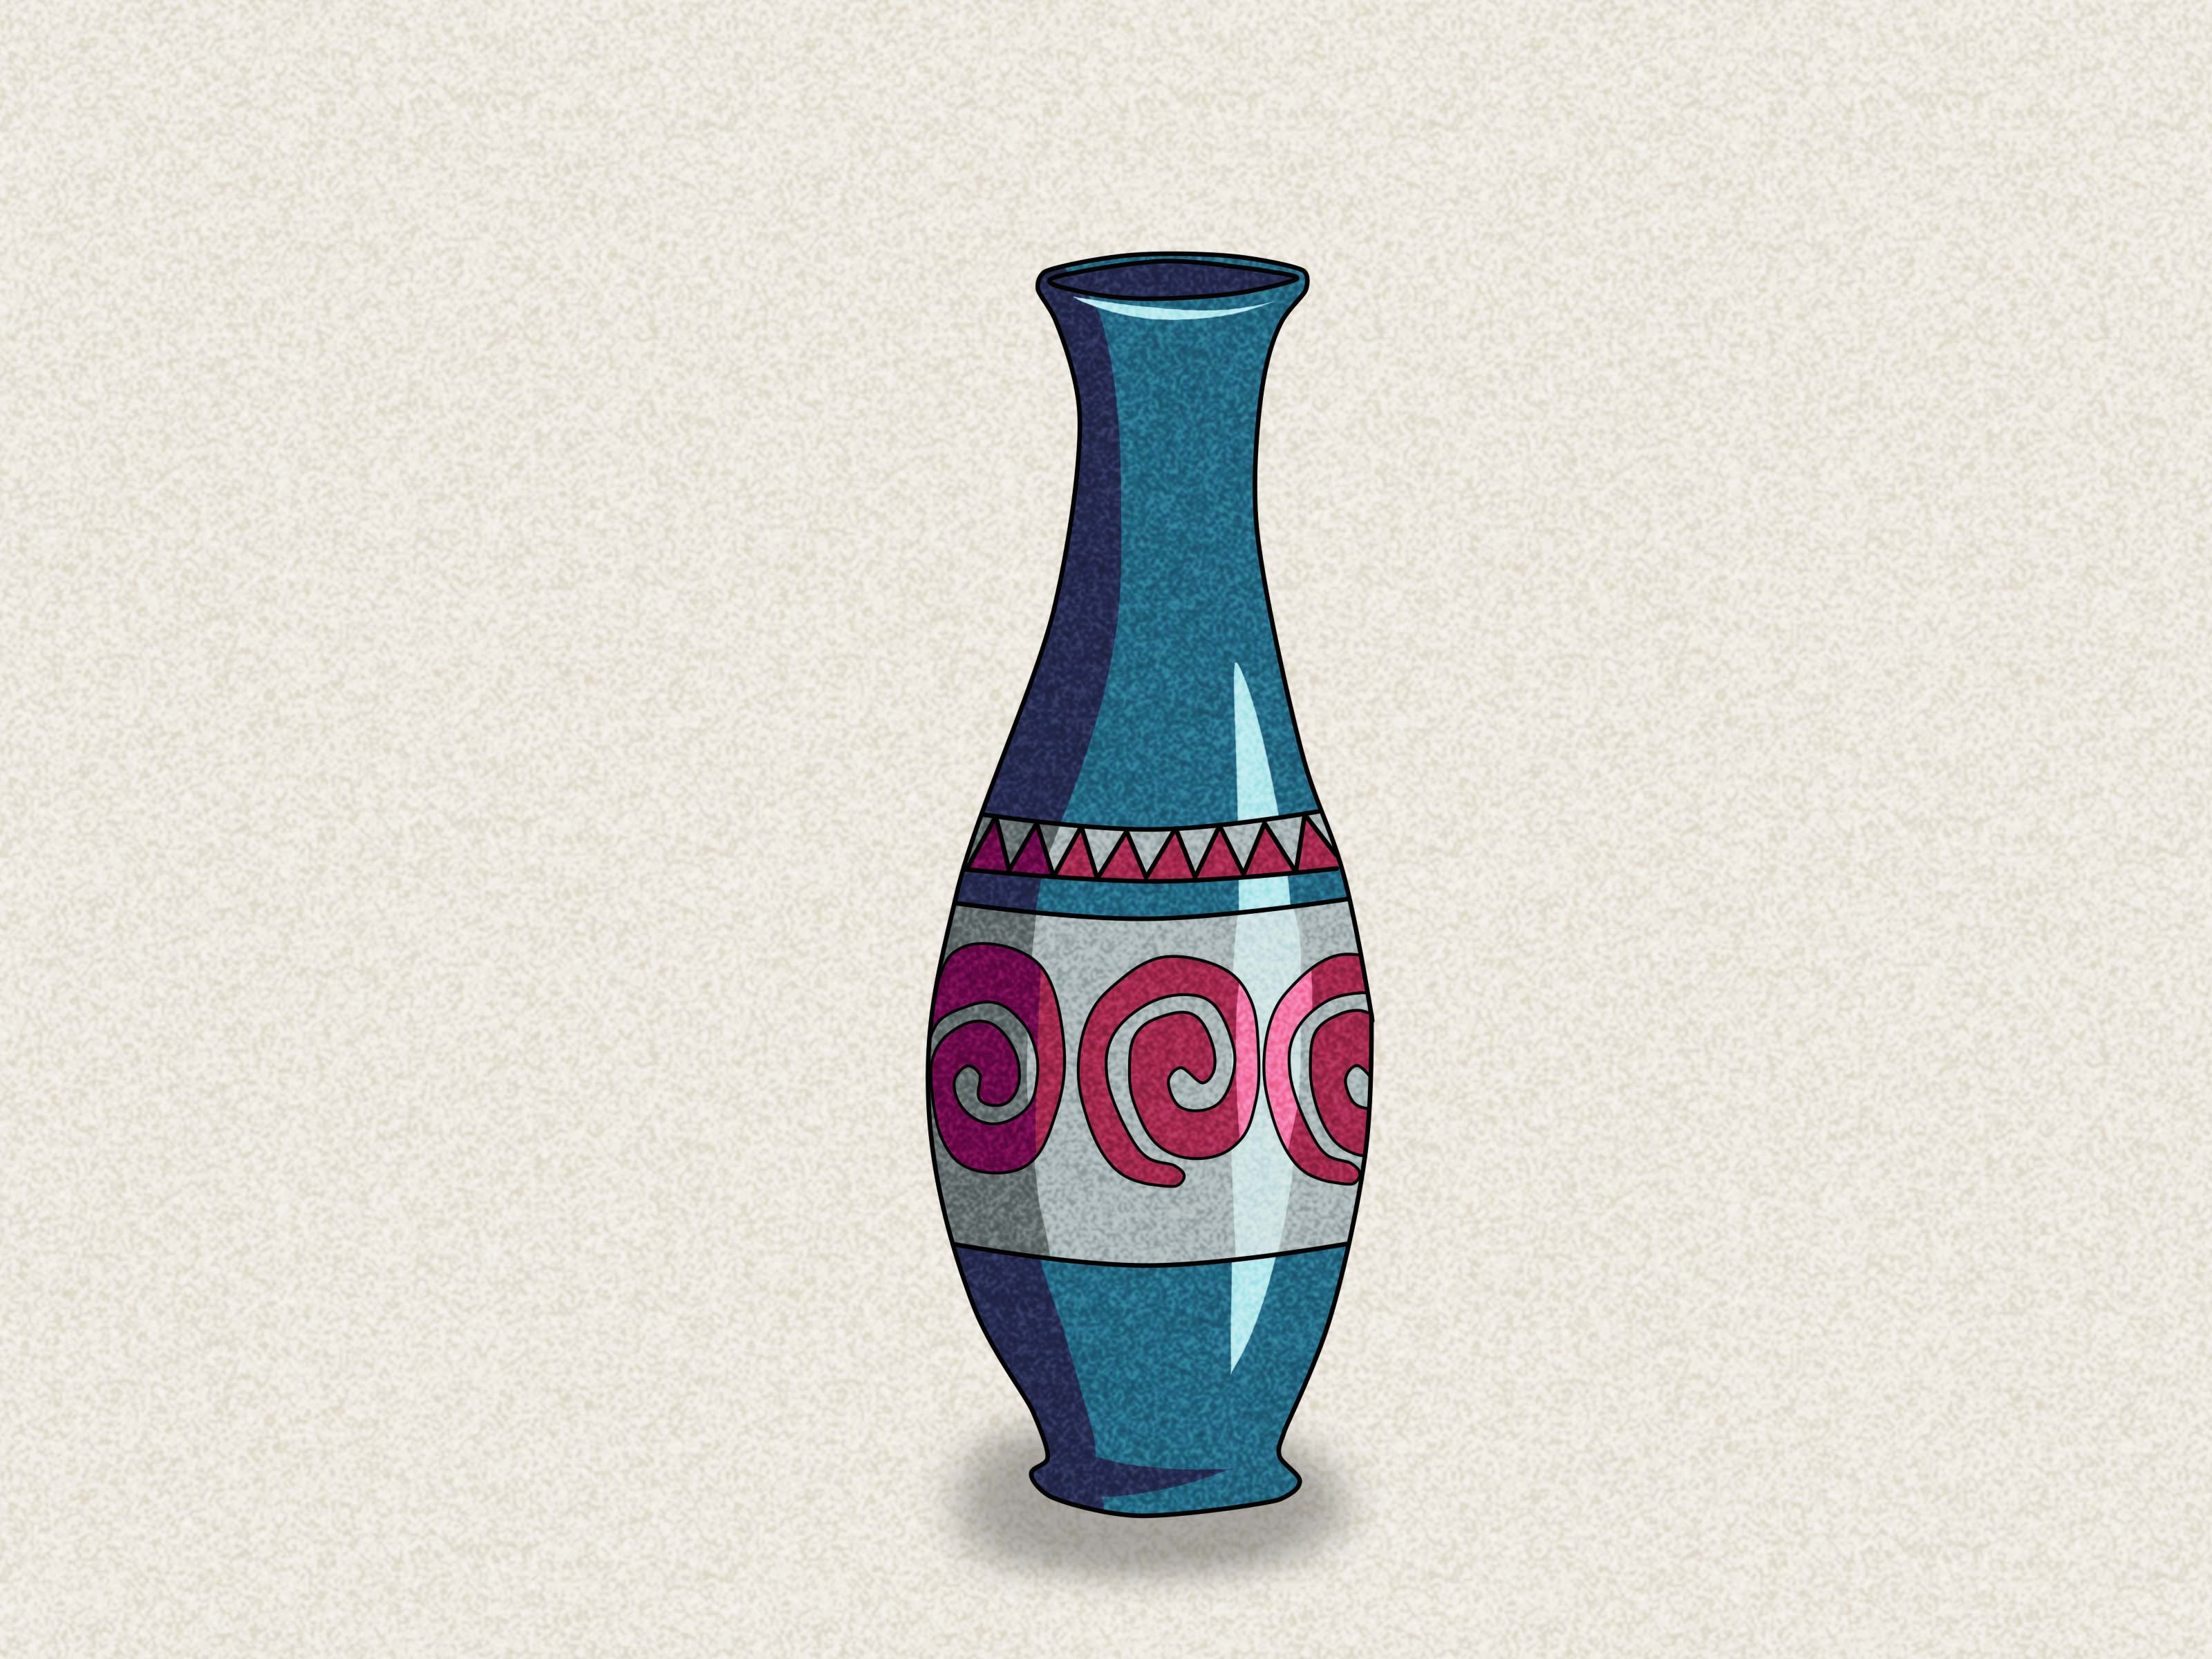 Drawn vase easy WikiHow a Draw to Steps